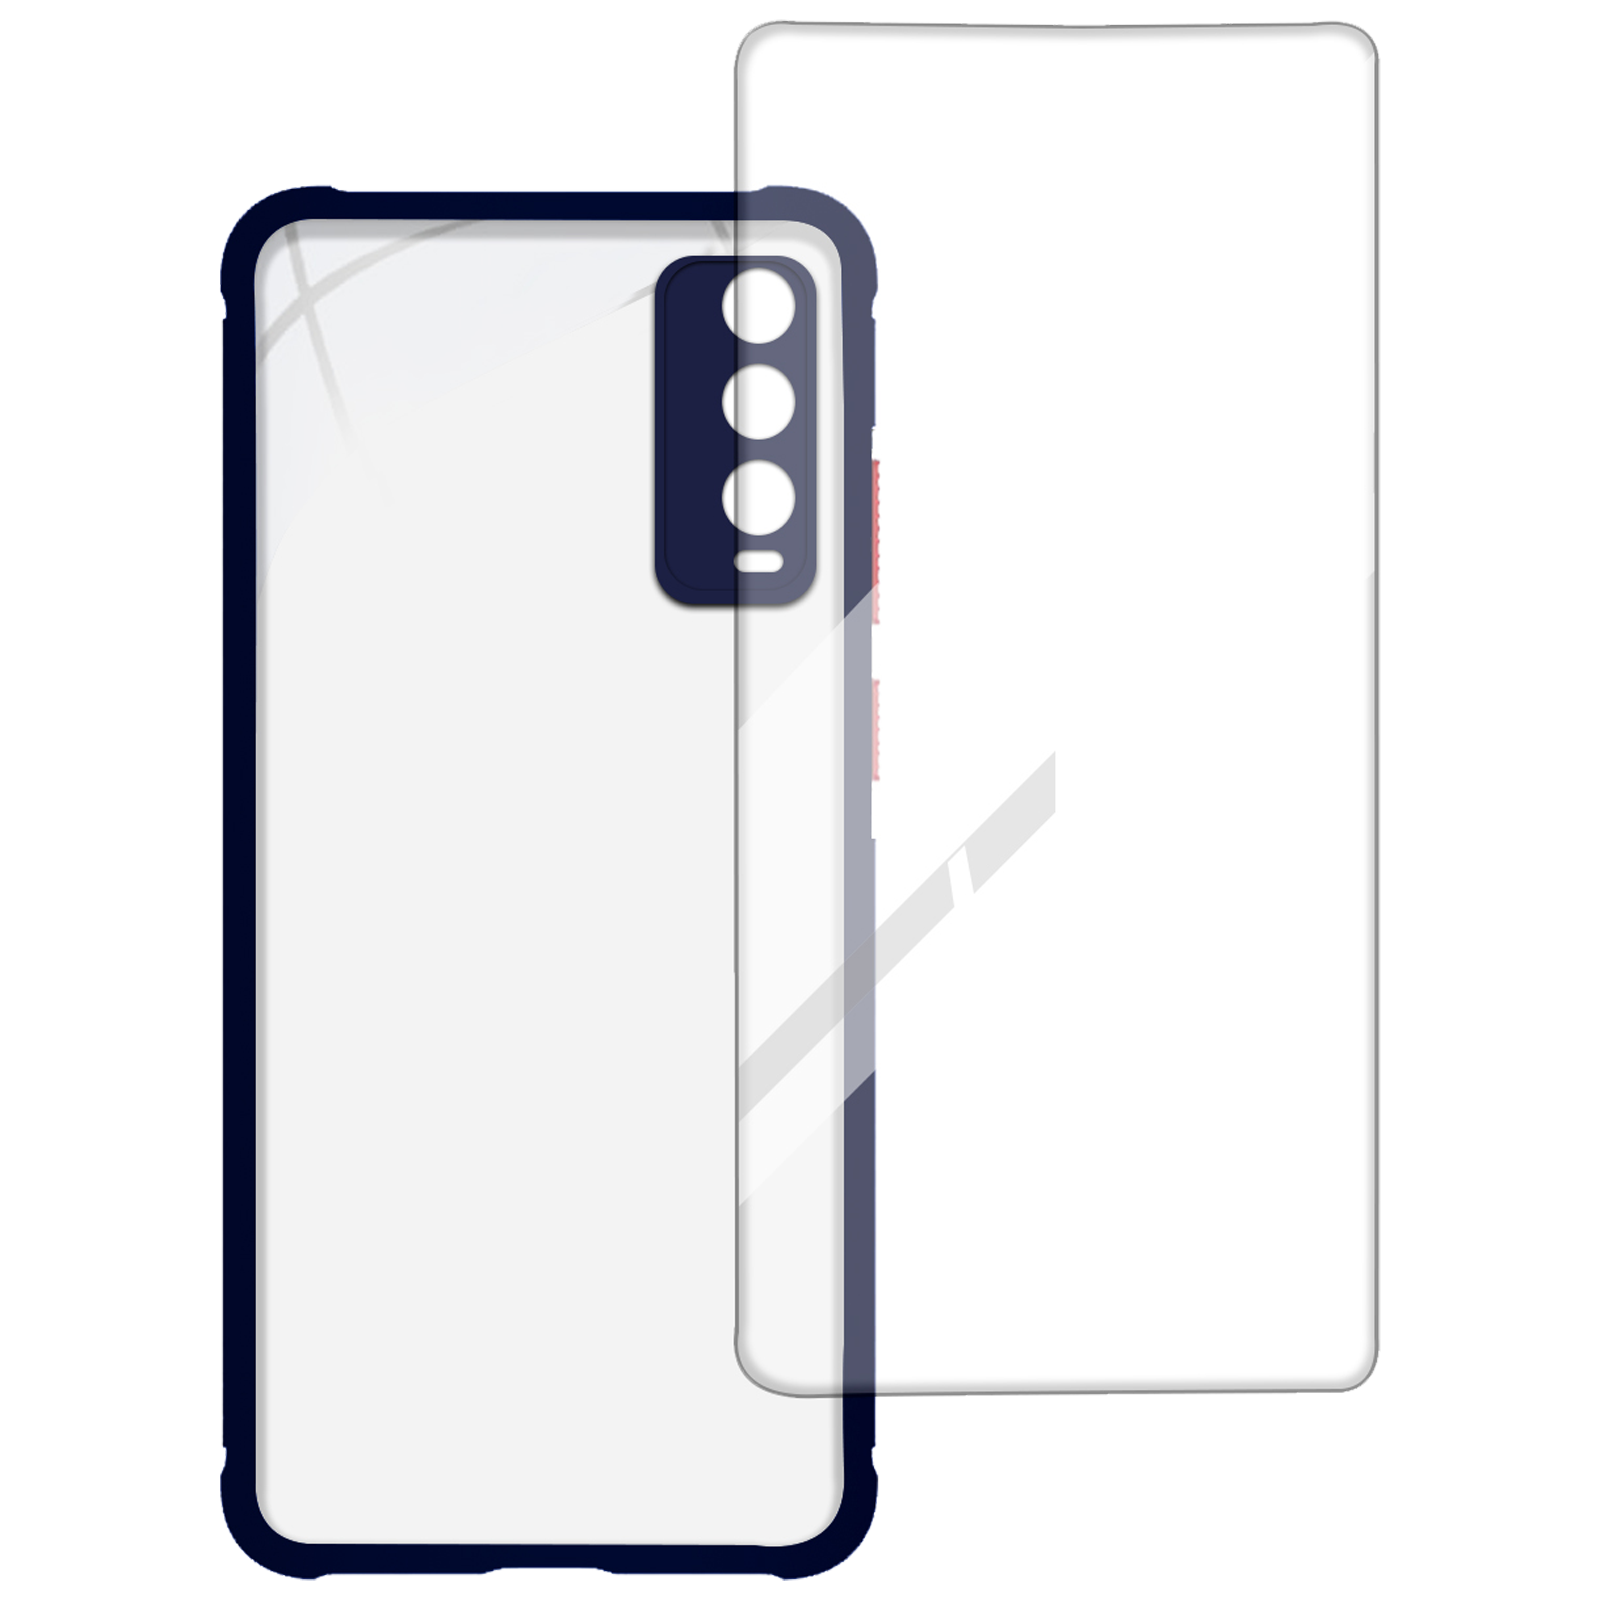 Arrow Hybrid Back Case and Screen Protector Bundle For Vivo Y20G (Ultra Transparent Visibility, AR-994, Blue)_1